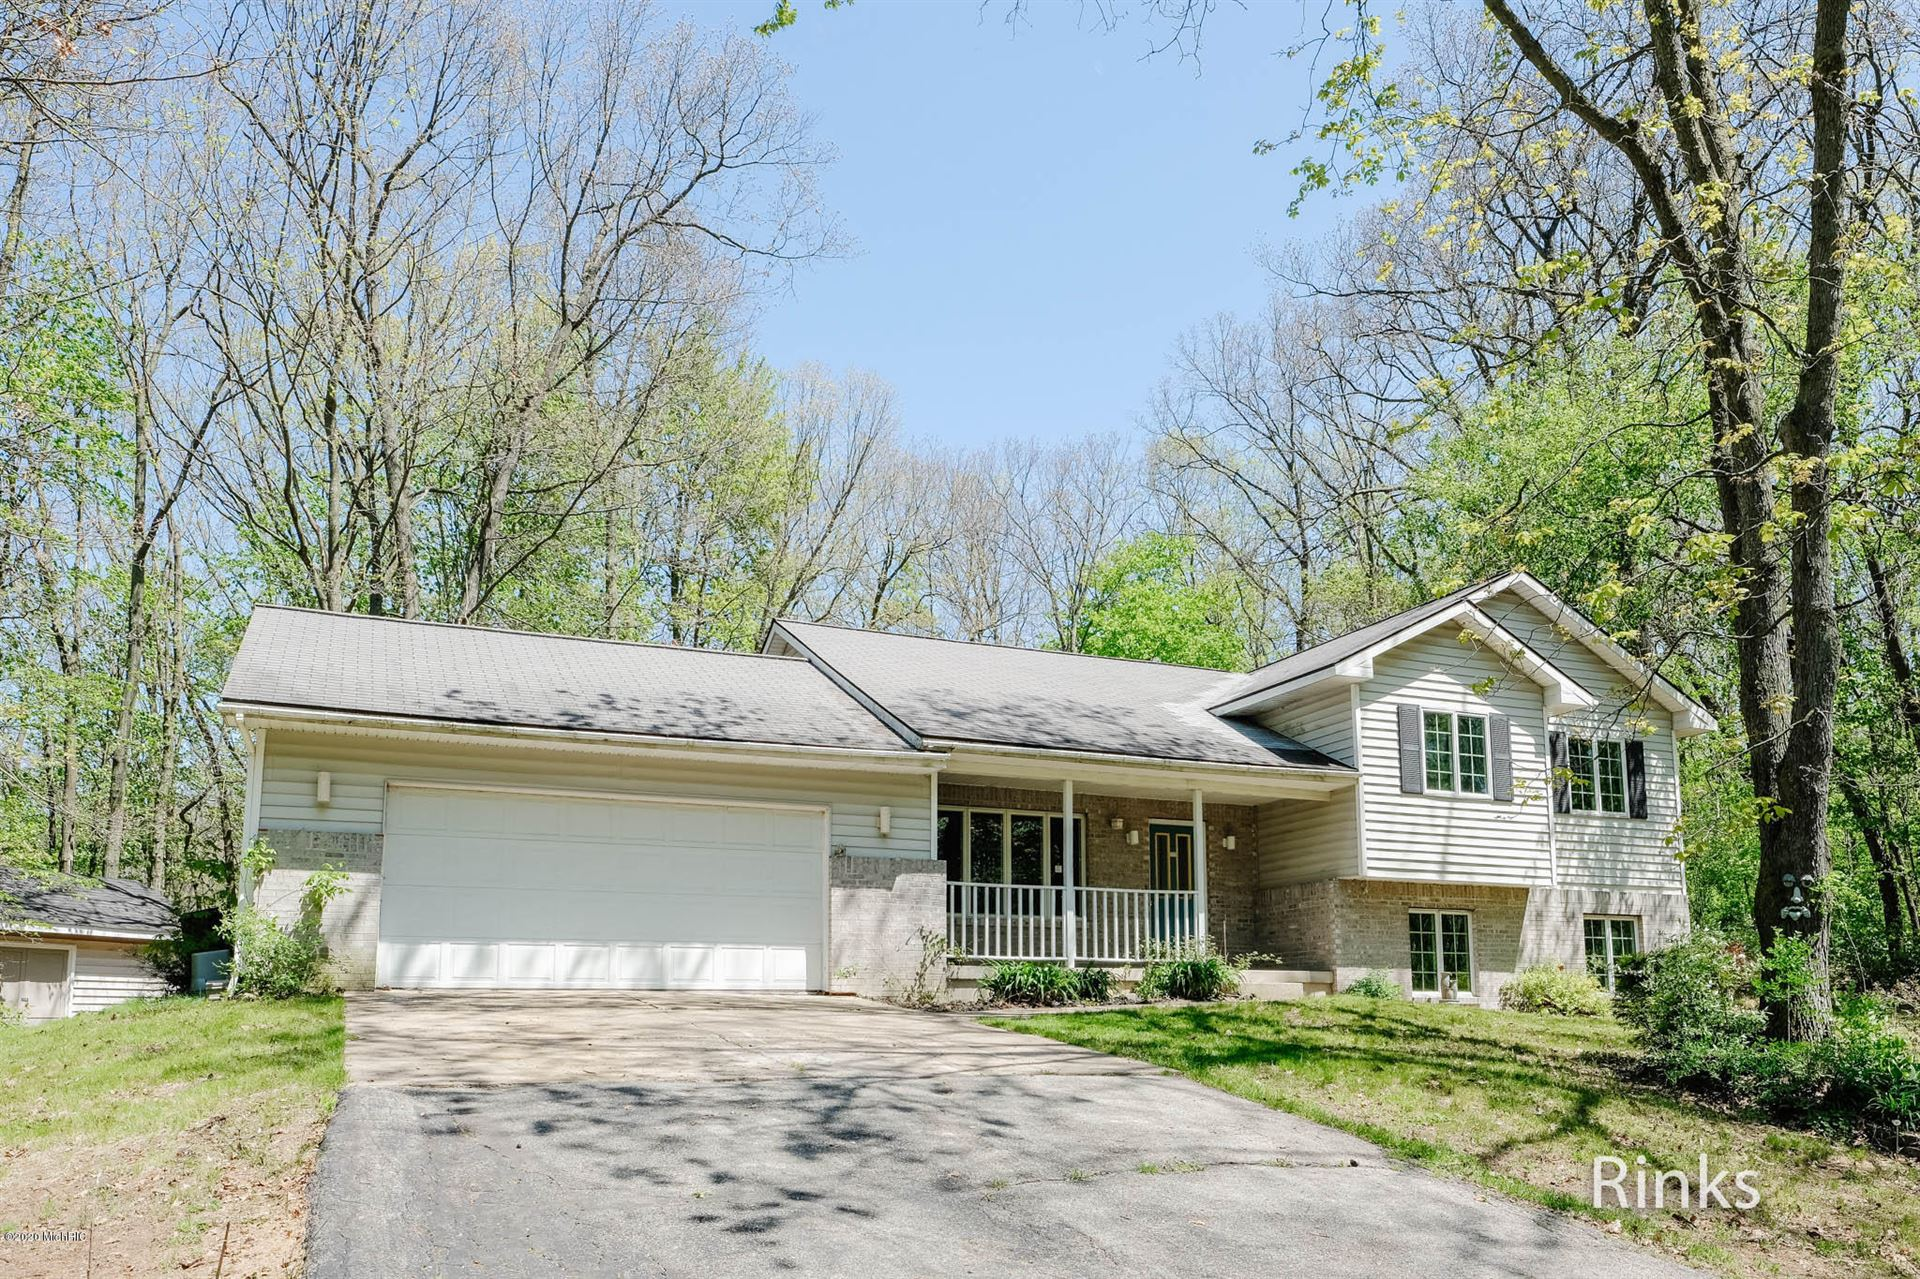 8010 S Asterwood Ct, Middleville, MI 49333 - MLS#: 20018346